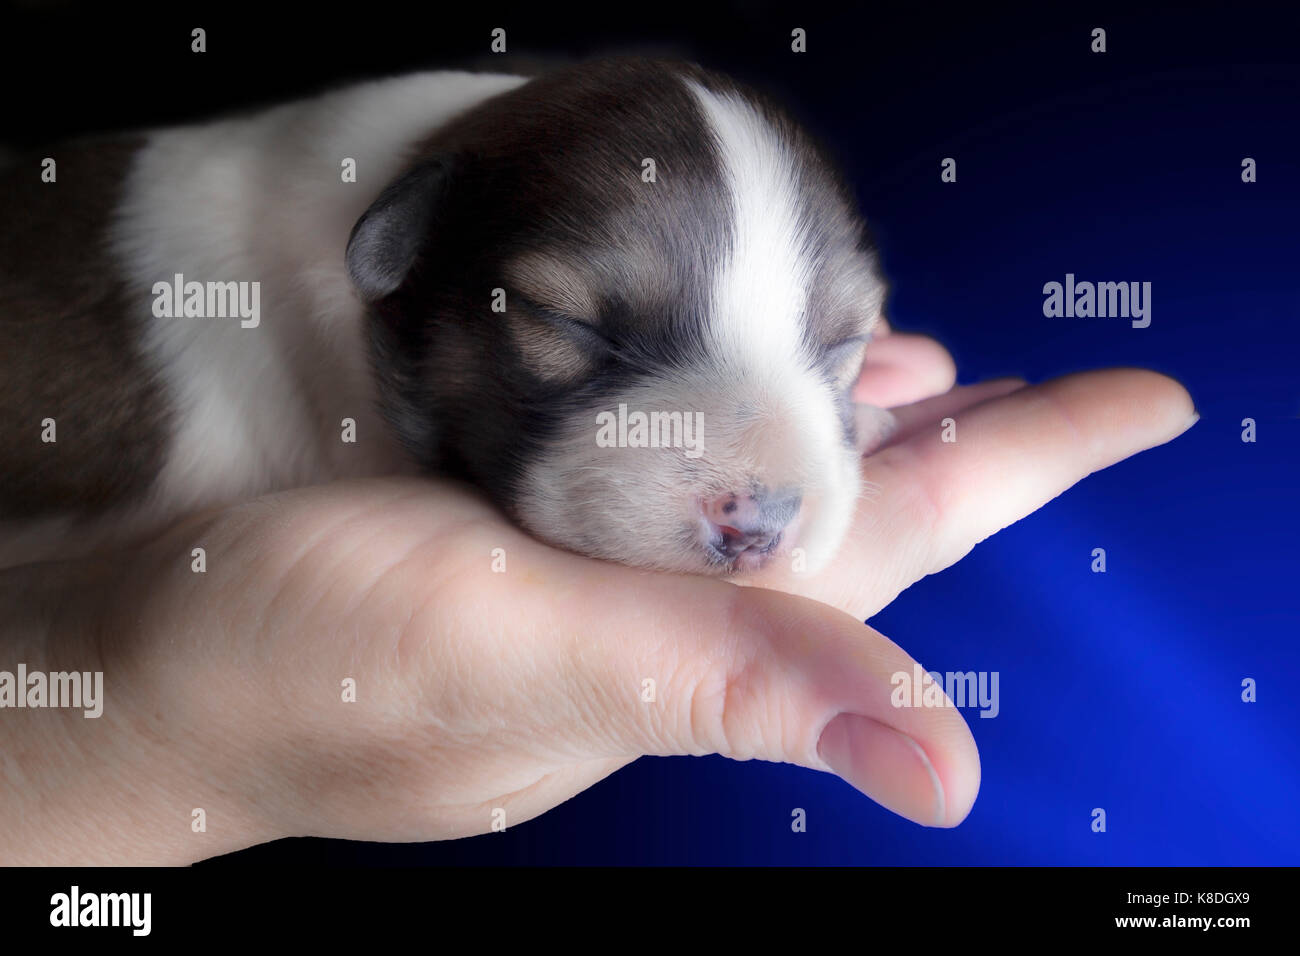 Newborn puppy in the palm on a black background. - Stock Image